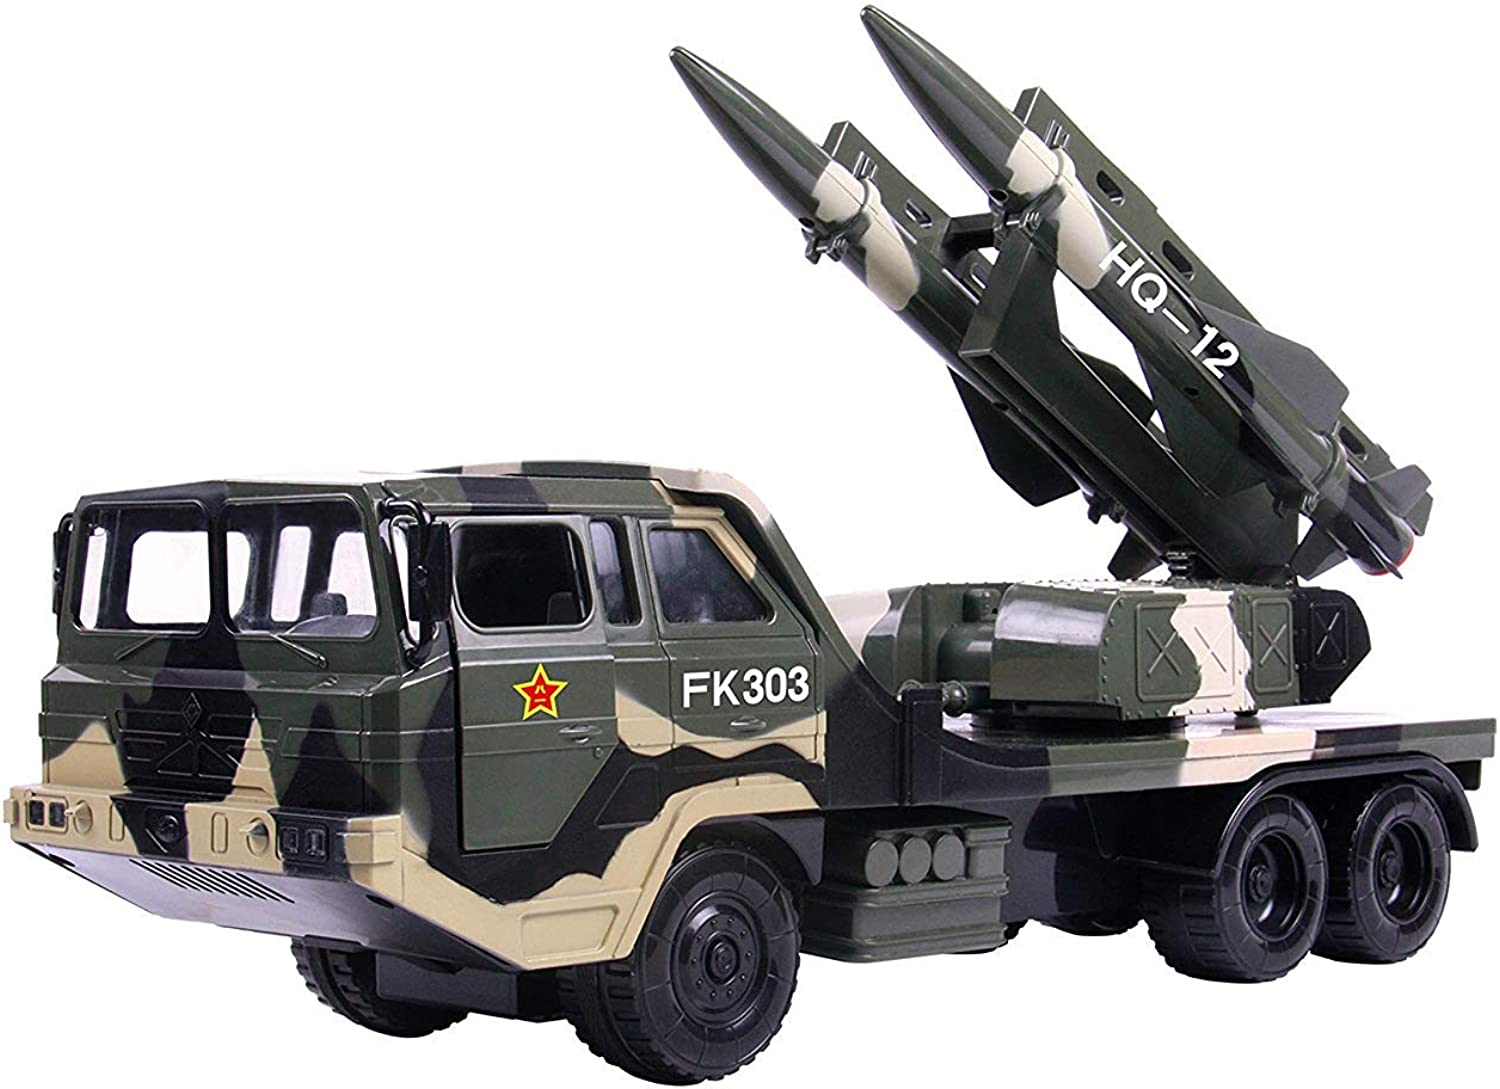 Kaiaki Military Missile Transport Army Truck Anti Aircraft Twin Missile Jungle Camouflage Toy Truck